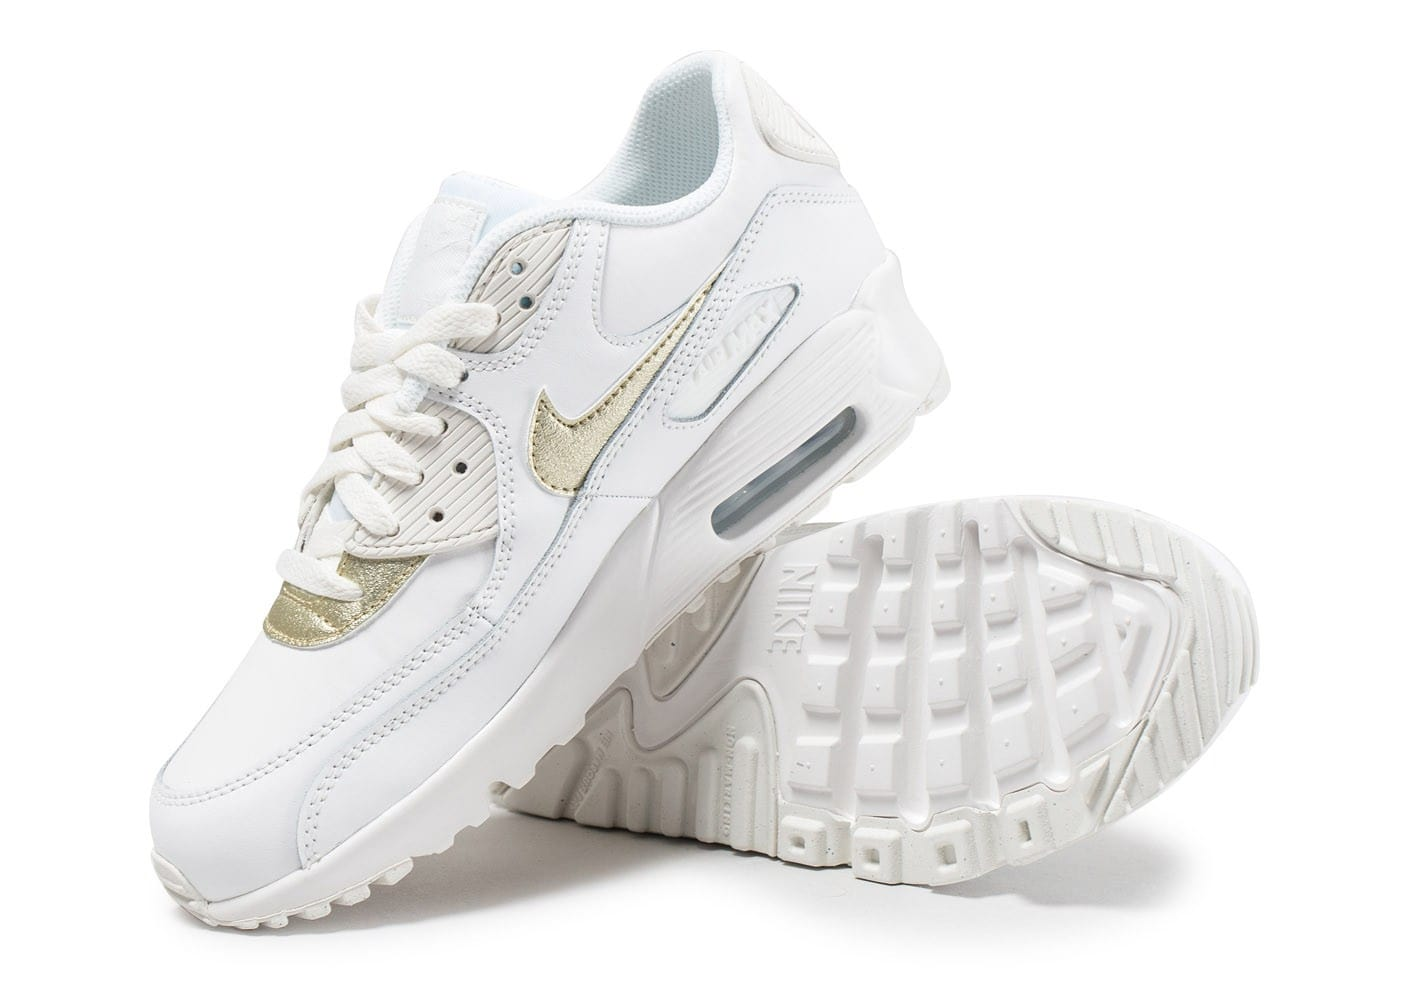 super mignon 5dade 1517a Nike Air Max 90 Leather Junior blanche et or - Chaussures ...